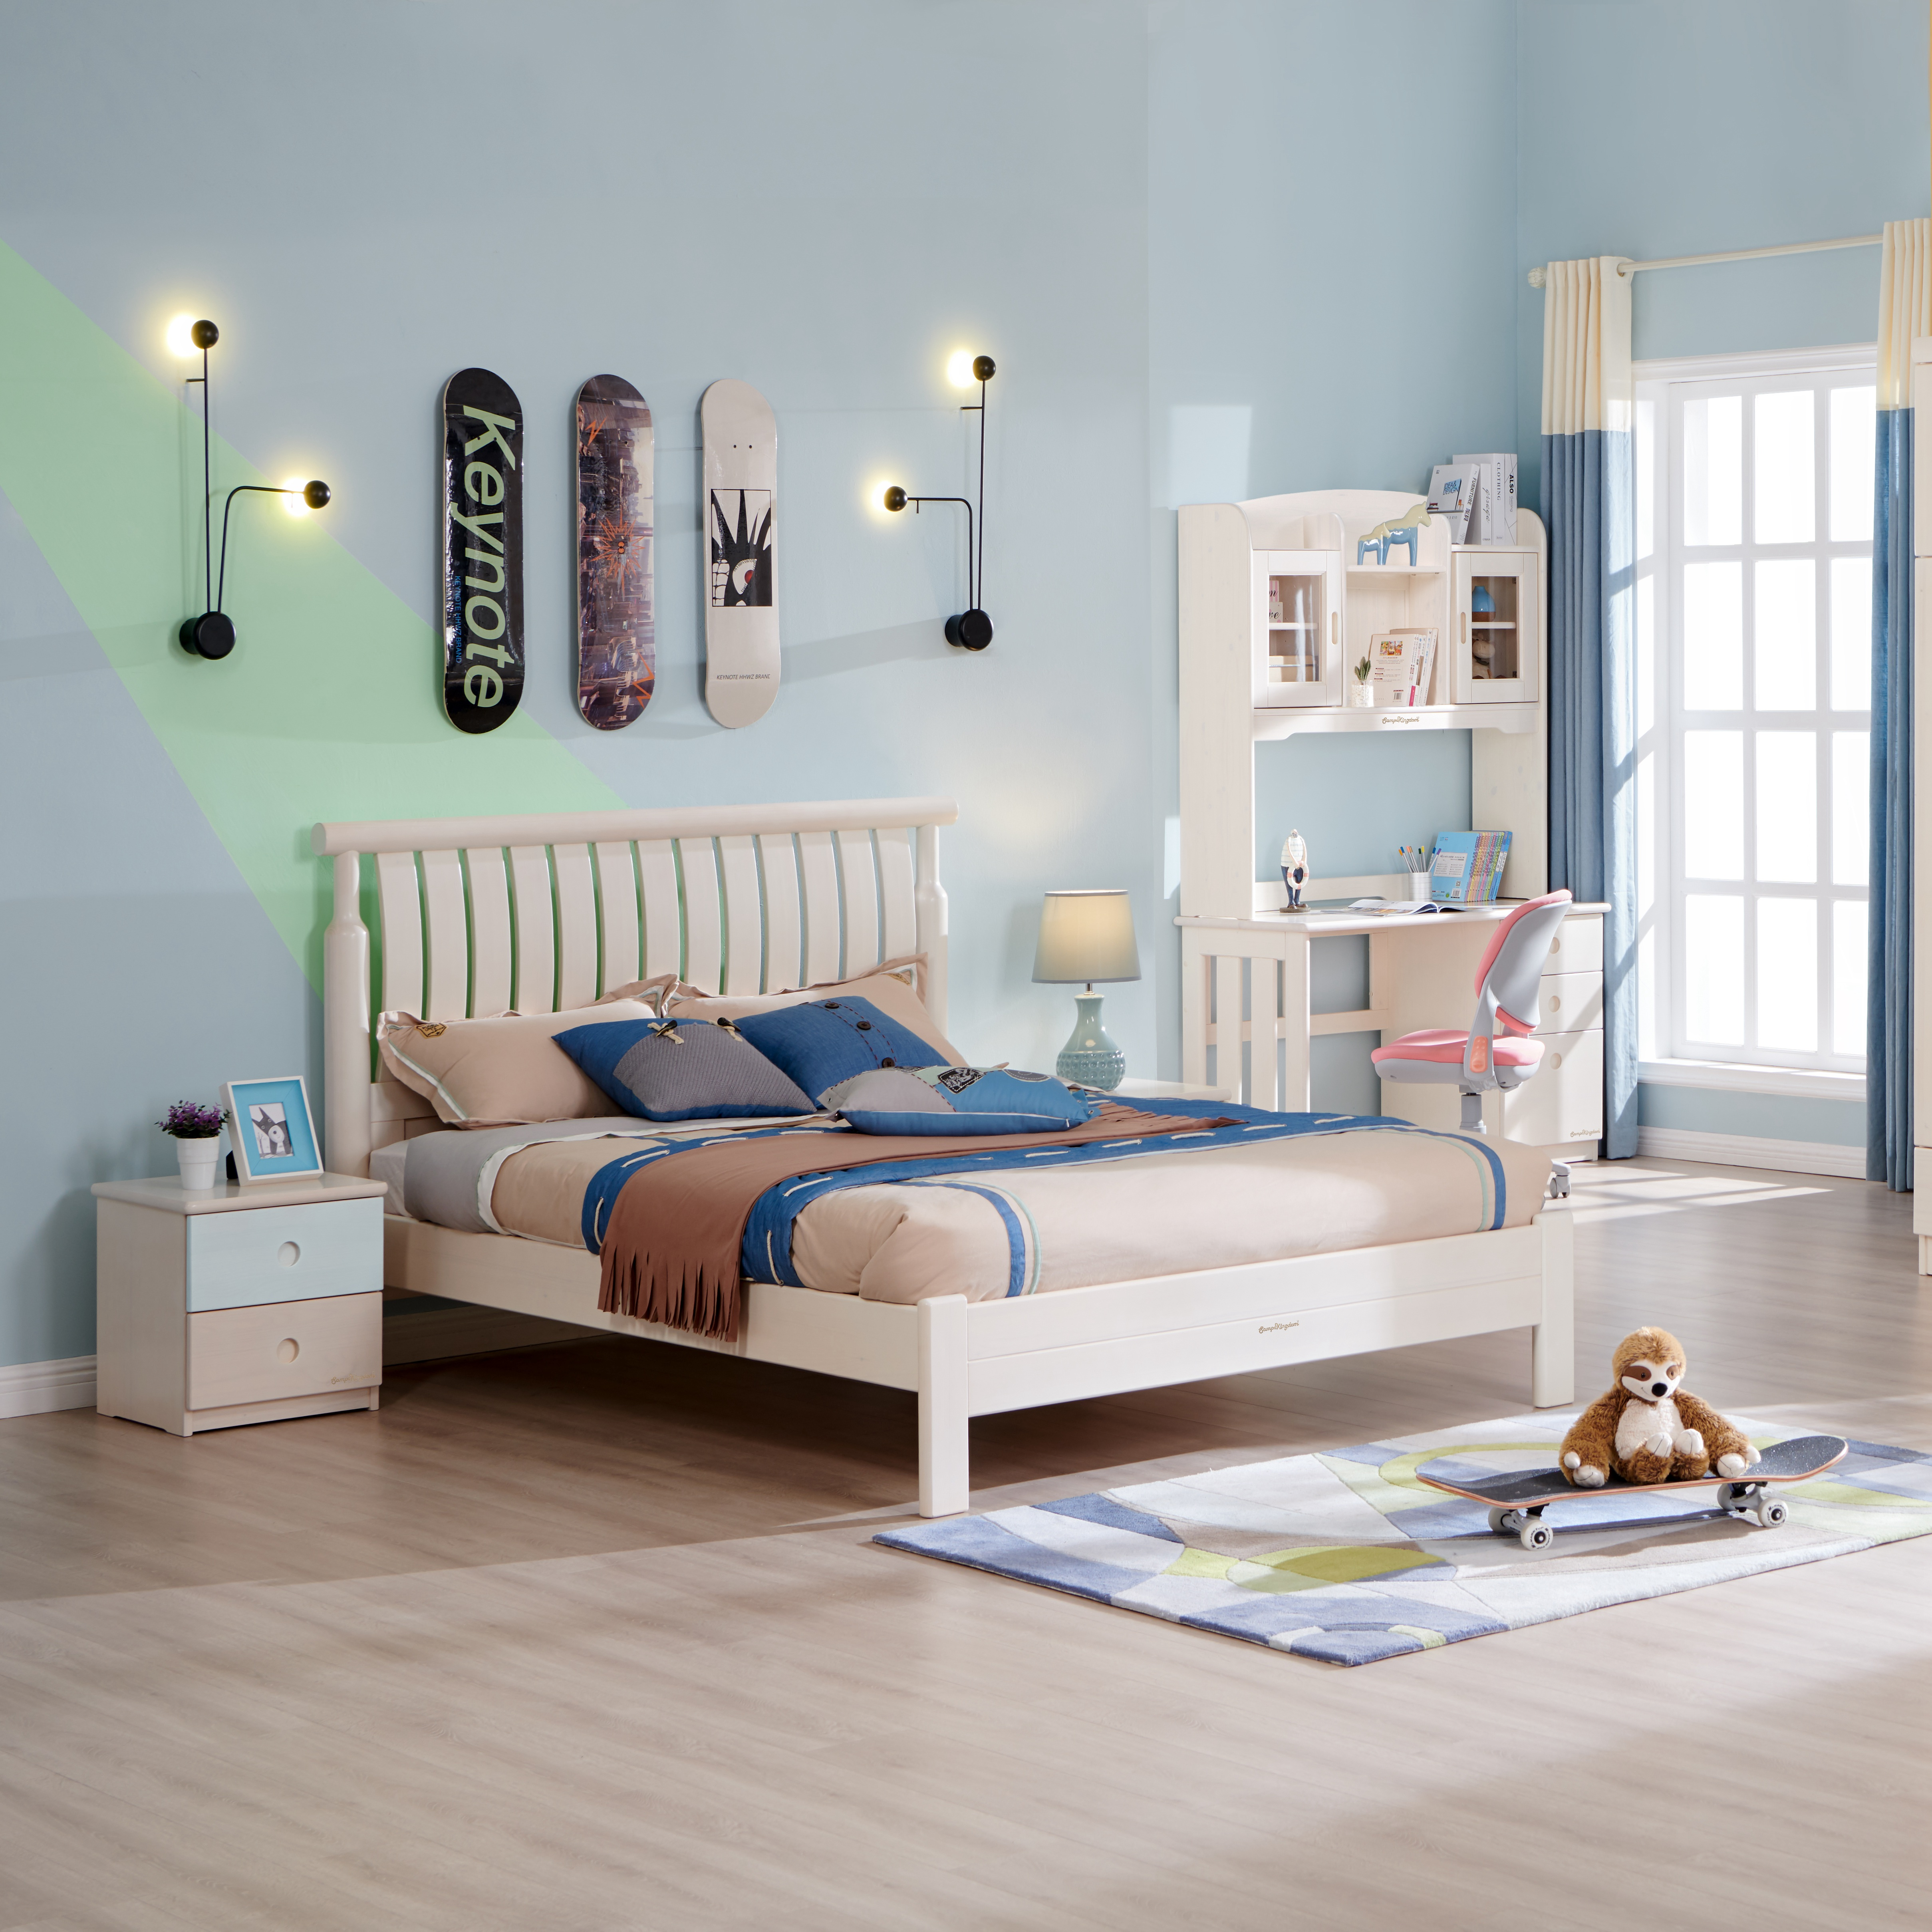 New Design Kids Double Bed Car Beds For Boys Blue Supplier